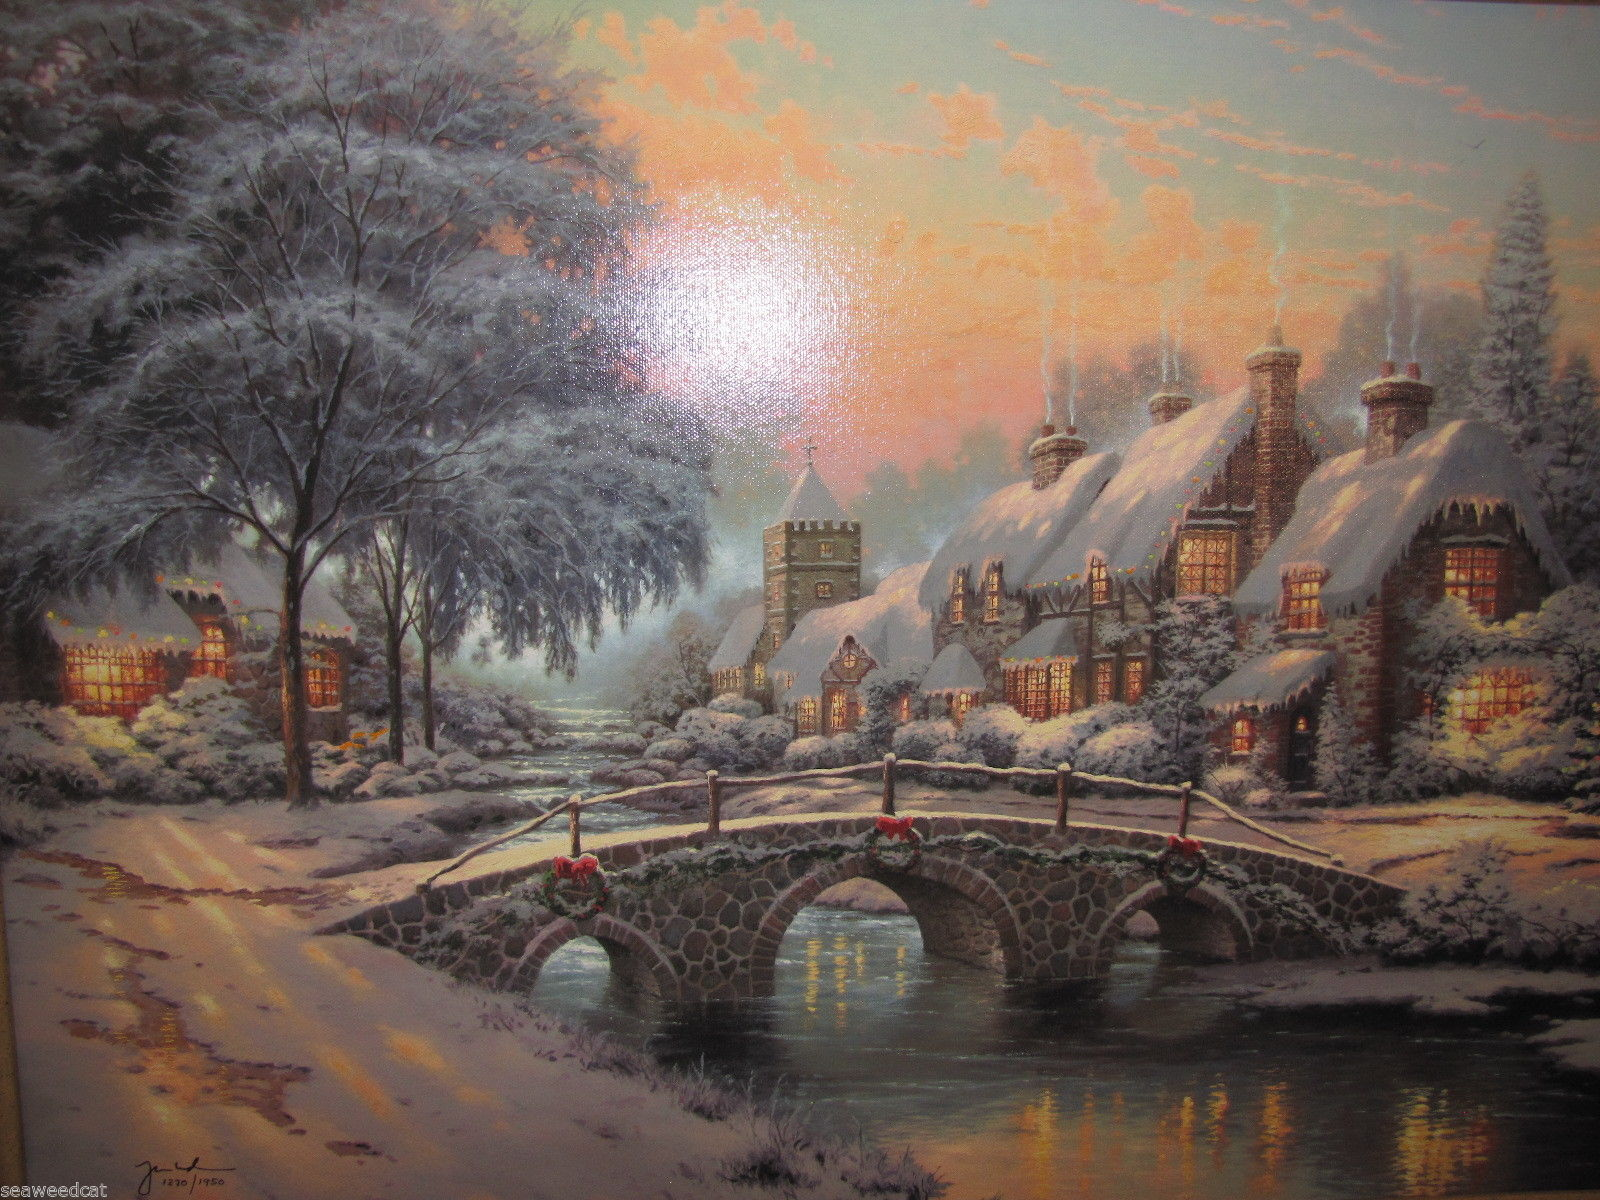 Thomas Kinkade Christmas.Thomas Kinkade Cobblestone Christmas Cobblestone Lane Vi S N Canvas Print